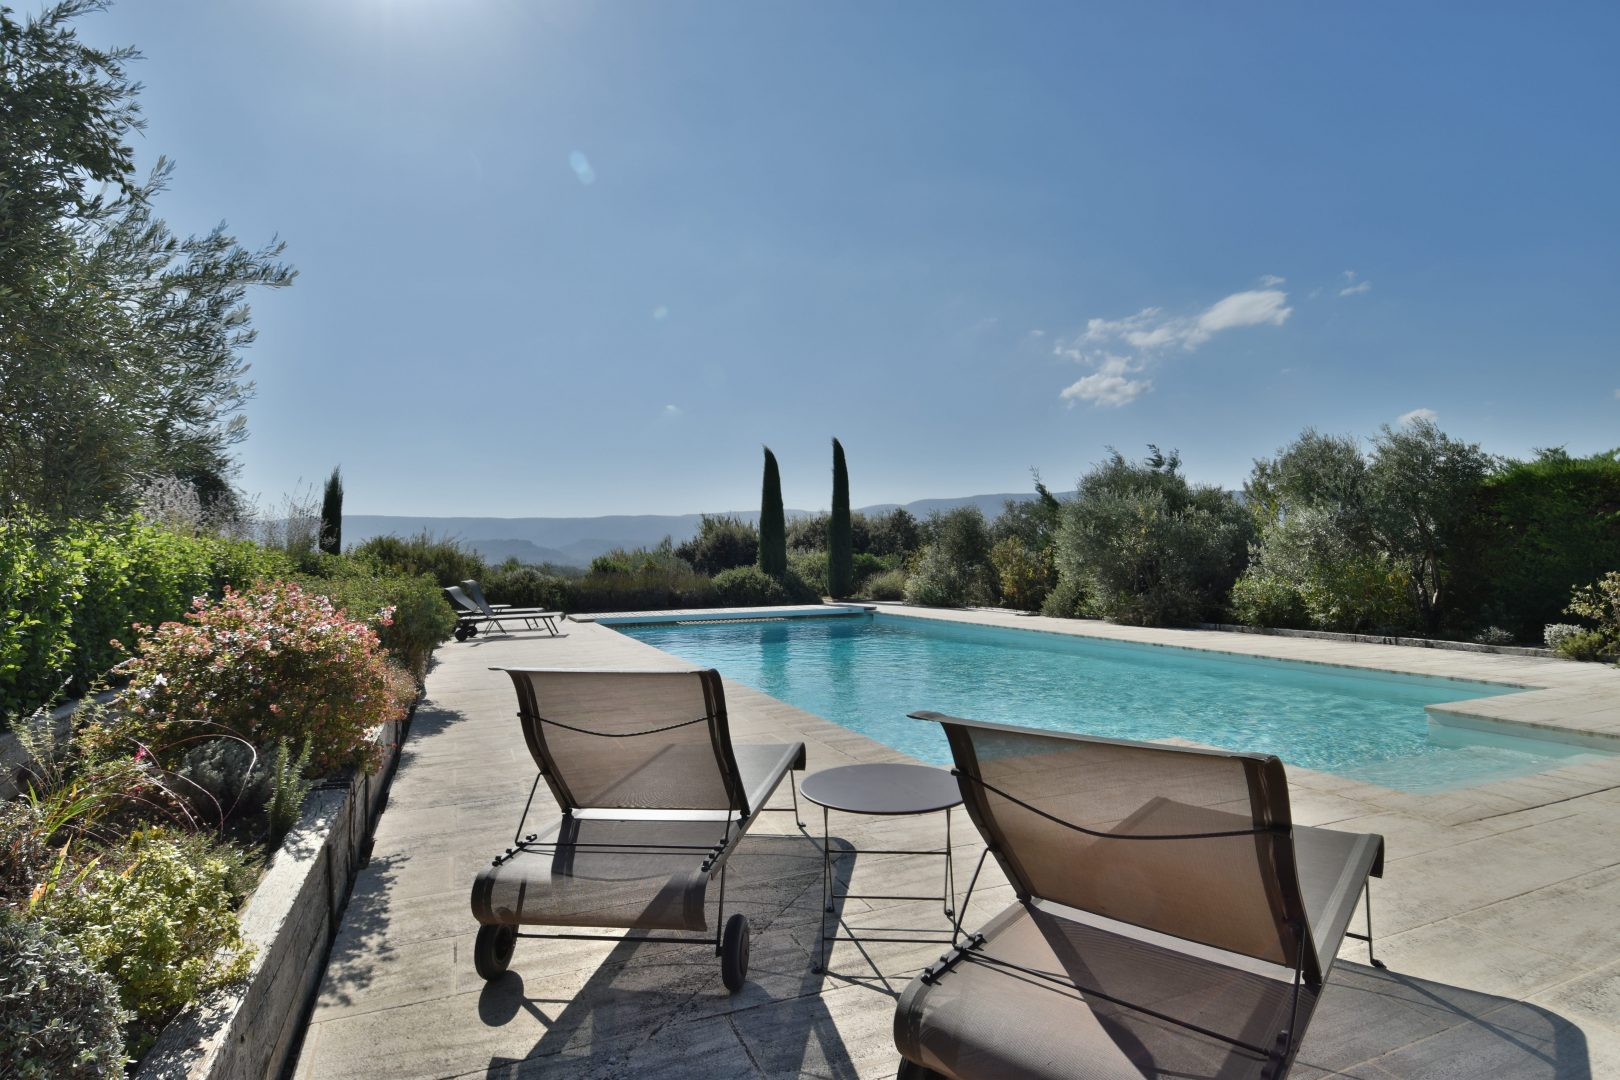 Country house, sleeps 12, private heated pool, table tennis, views